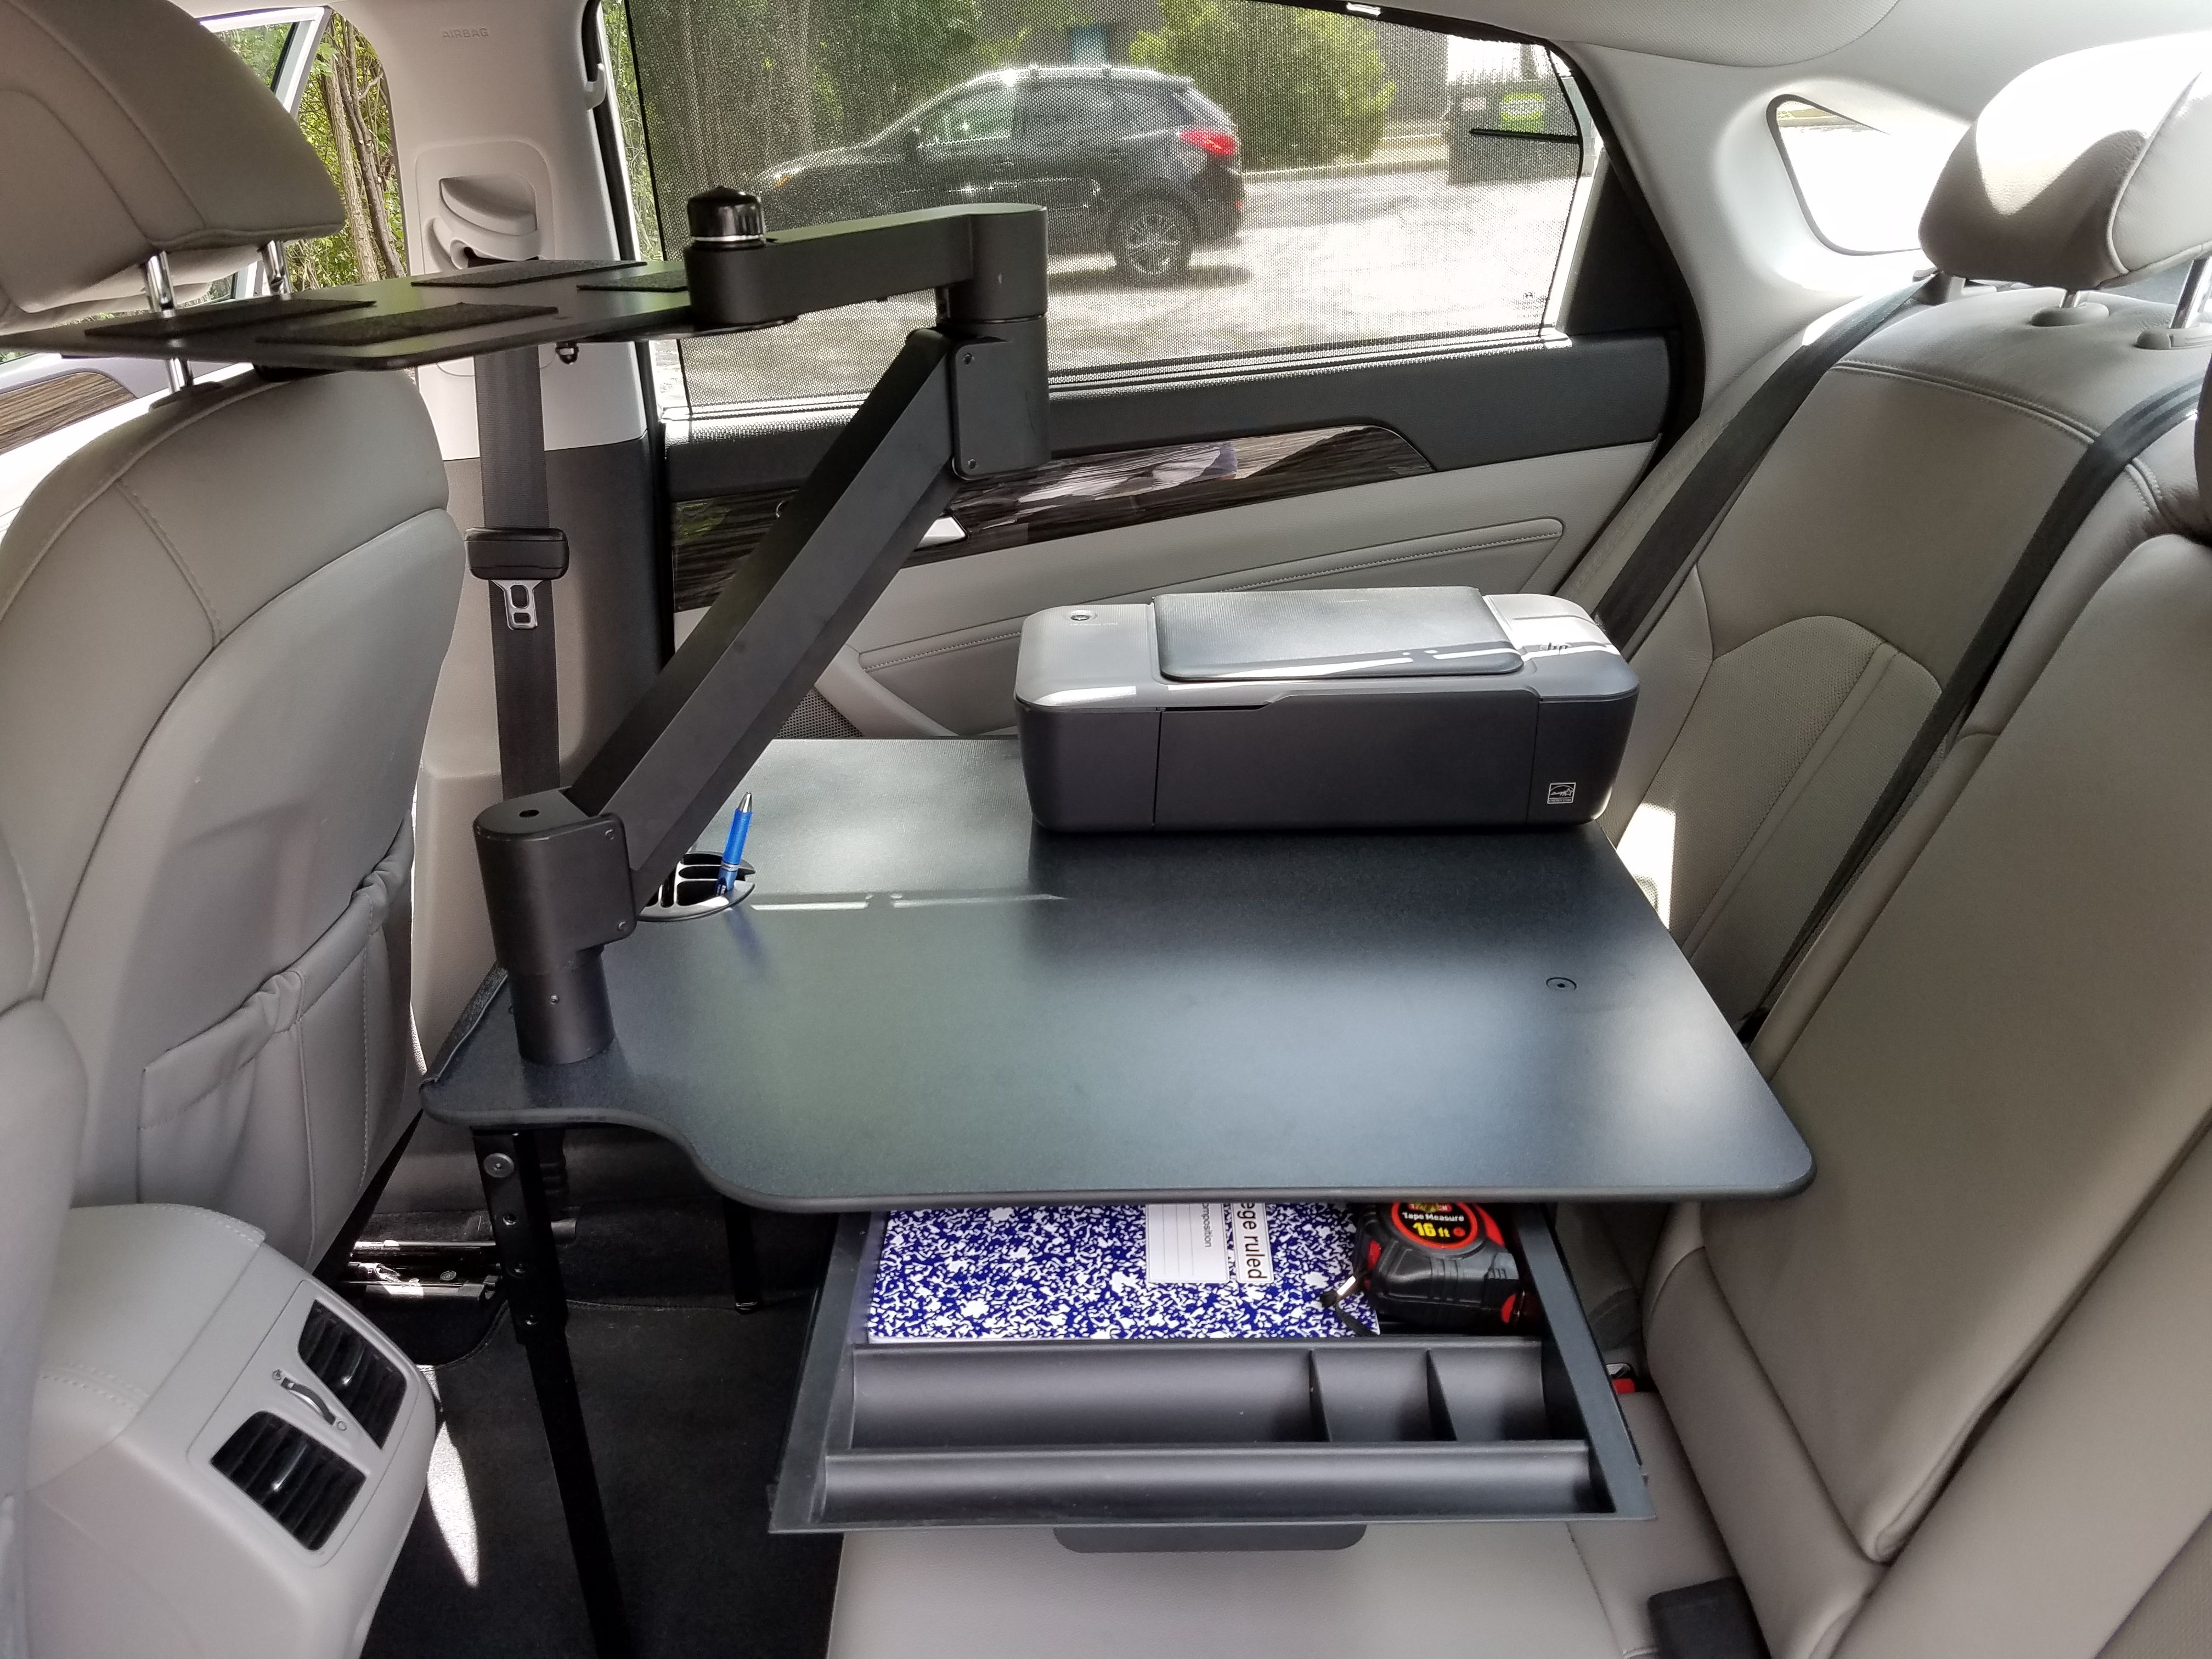 Great view of Ergnomic Solutions new sit-stand Car Desk. The ...